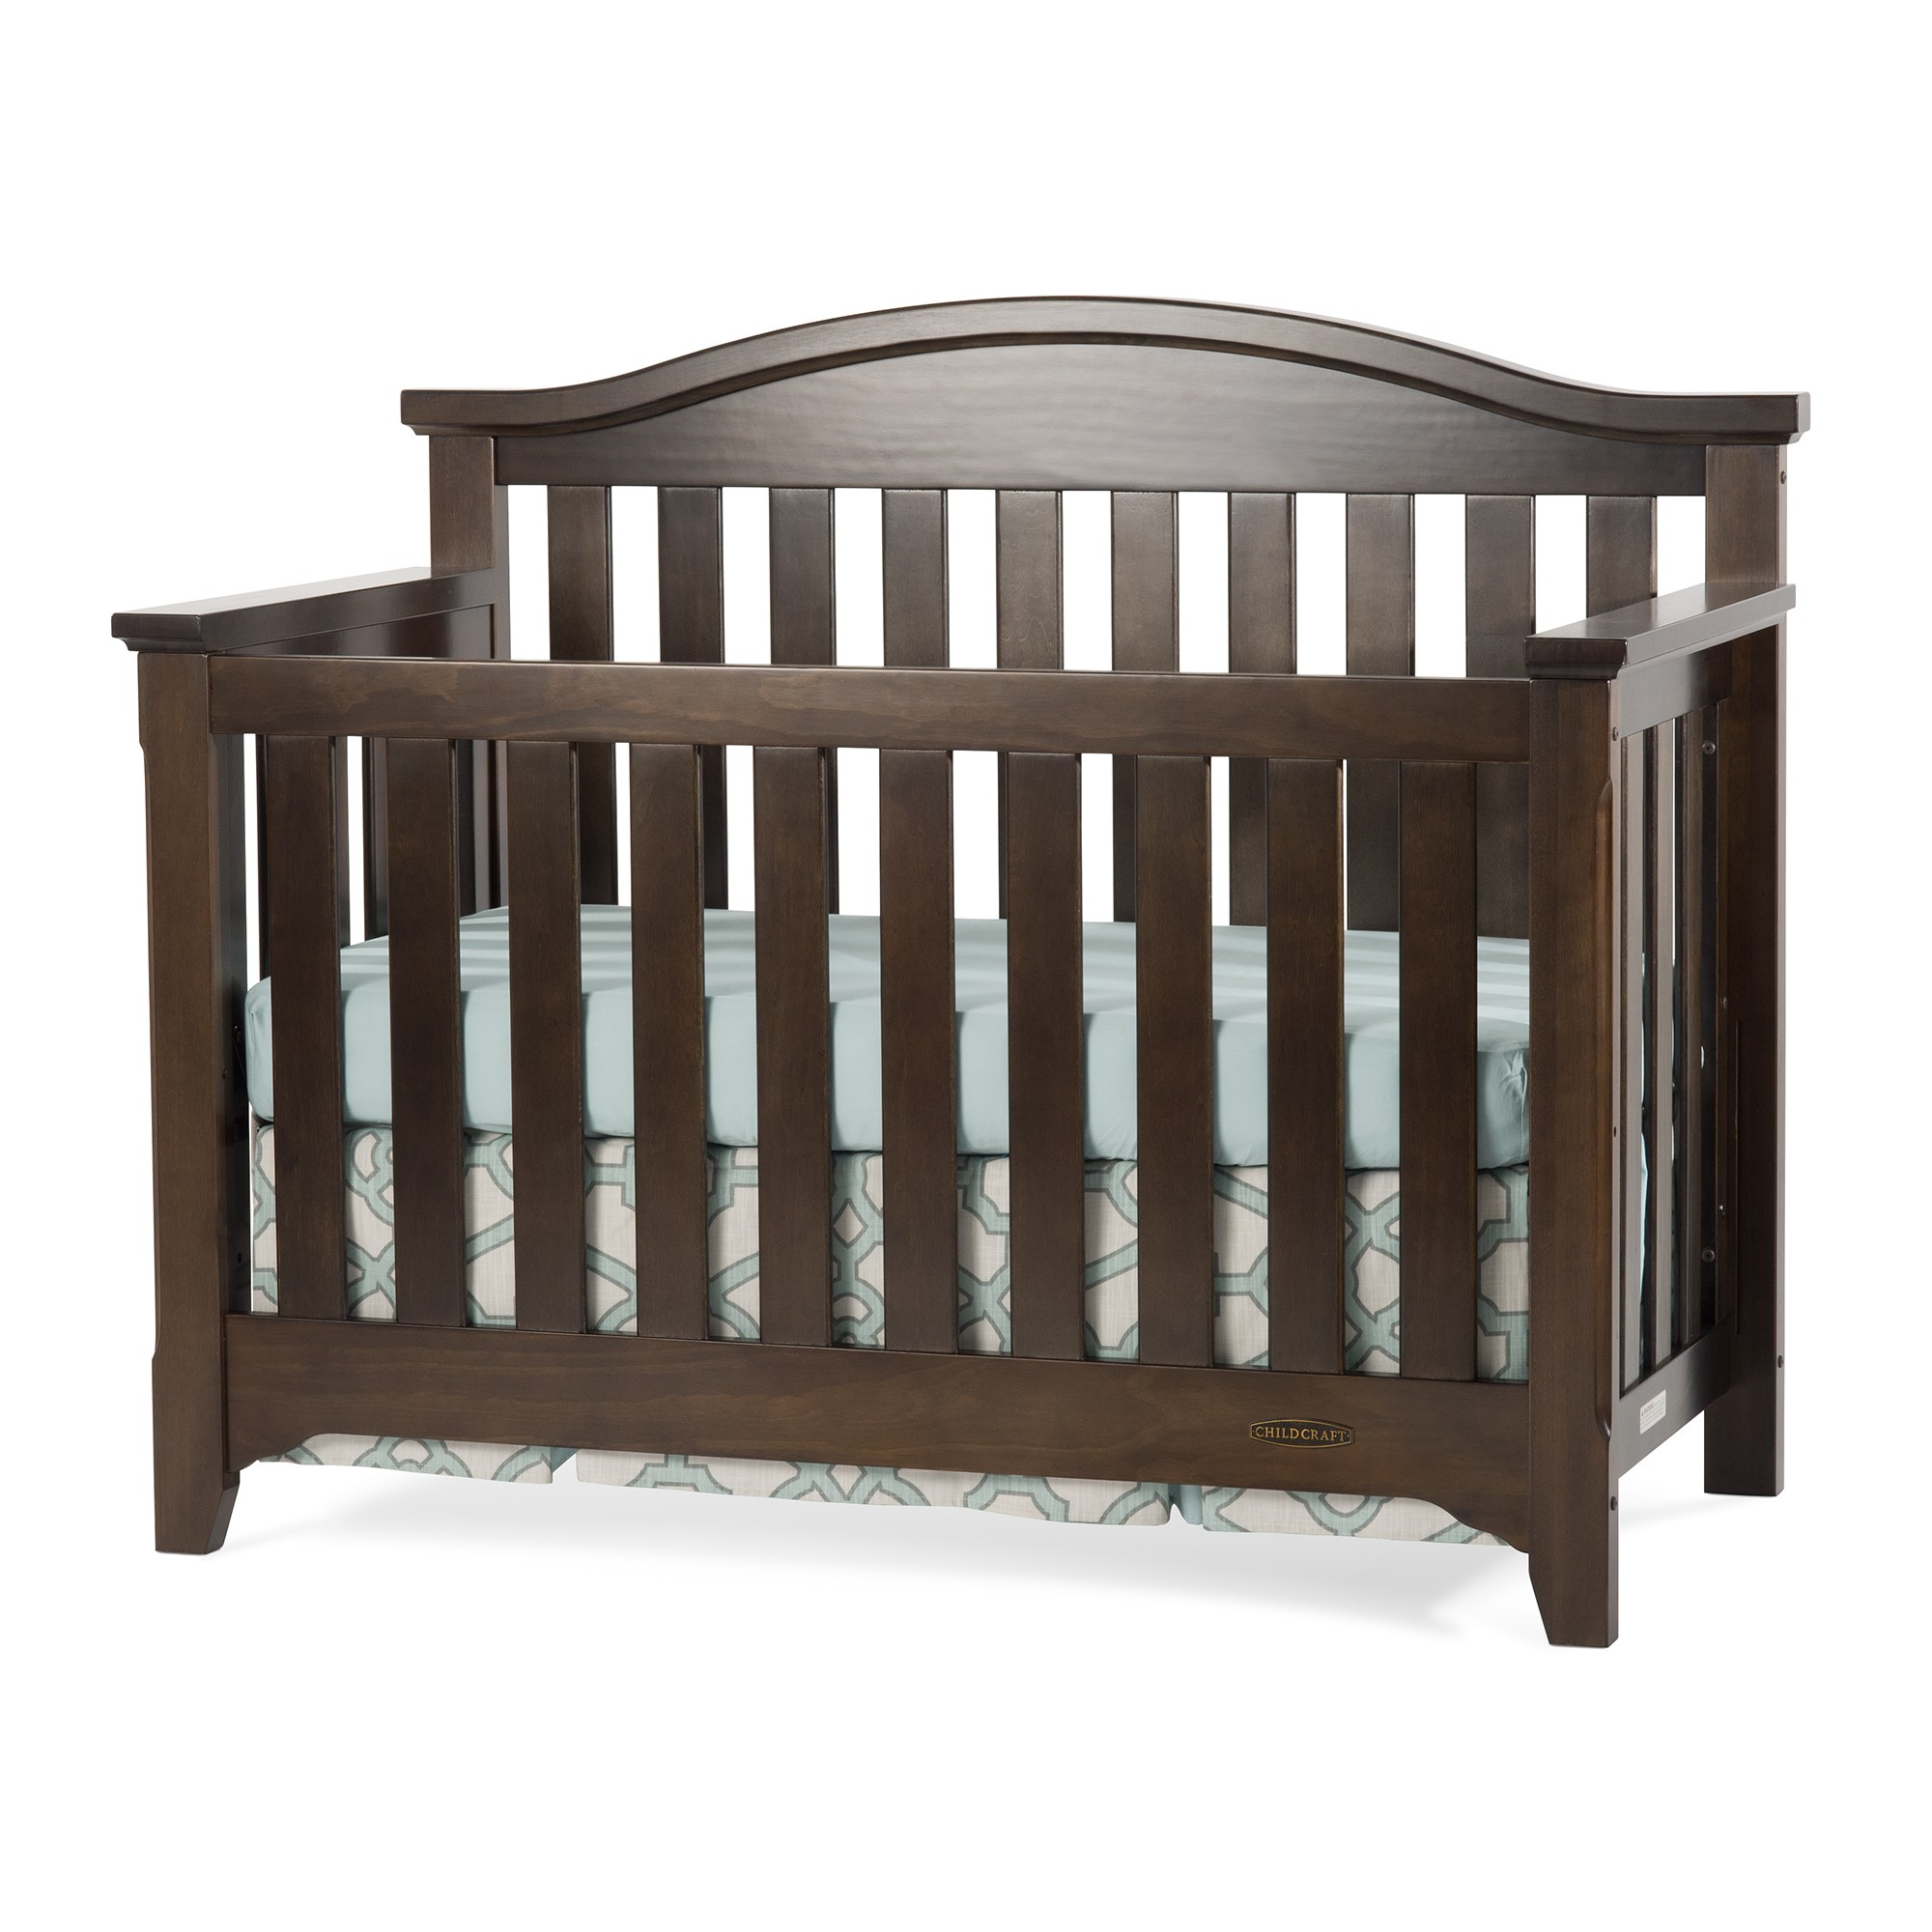 size and cache lifetime bed convertible as crib exciting toys of exclusive heritage together black dresserr us canada well r babies baby swaddlings toddler blankets enh with cribs full